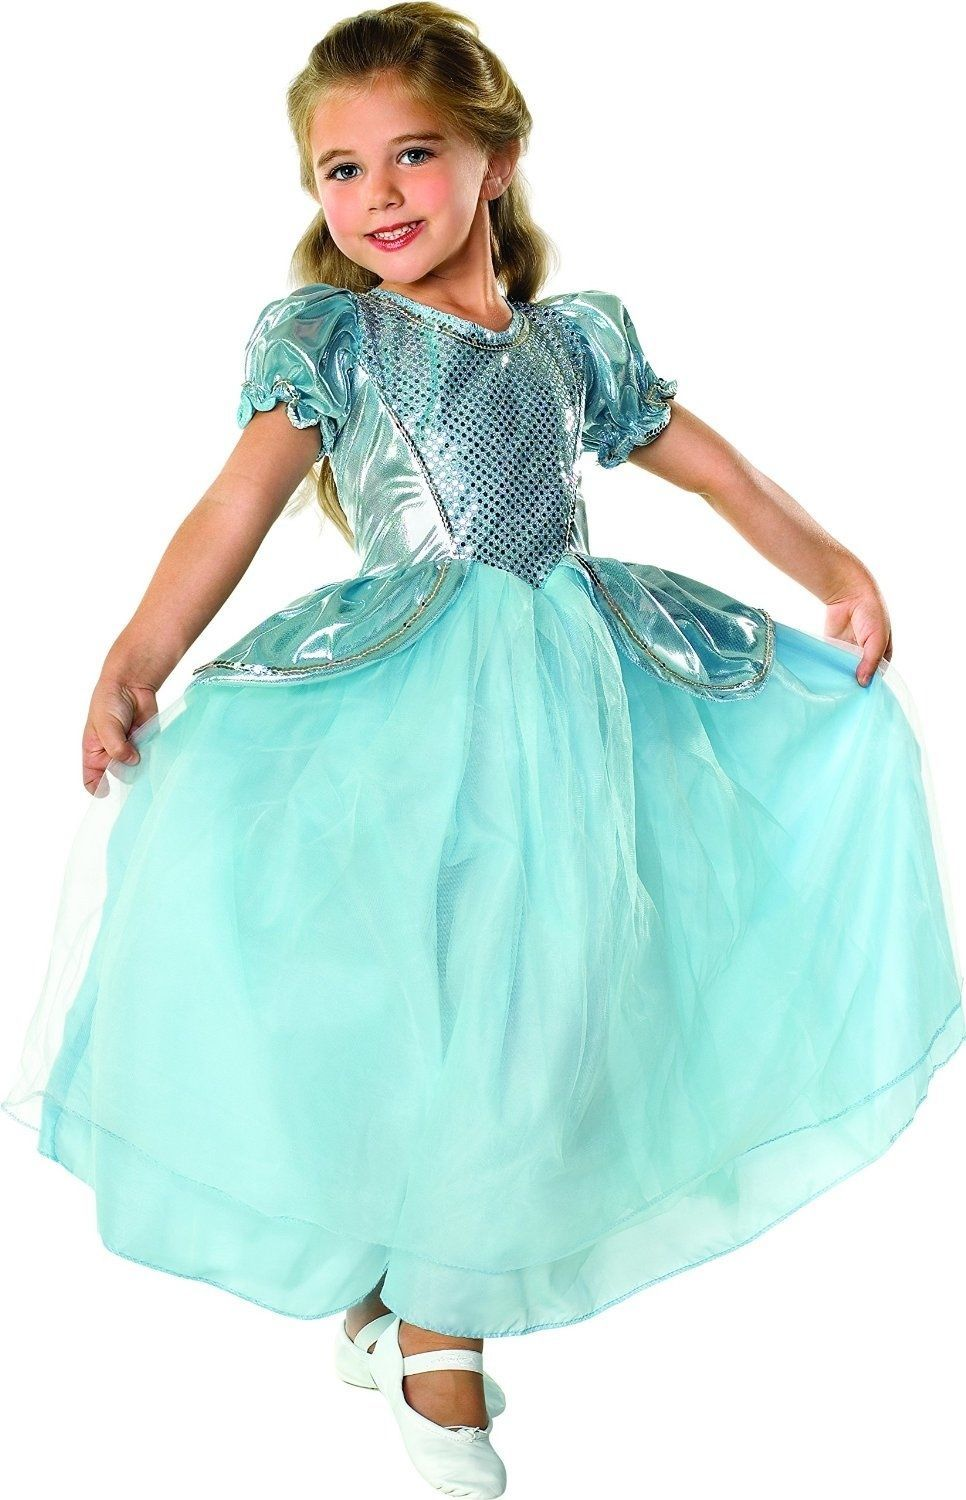 Image 3 of Beautiful Cinderella Palace Princess Aqua Ball Gown Polyester Costume, Rubies -